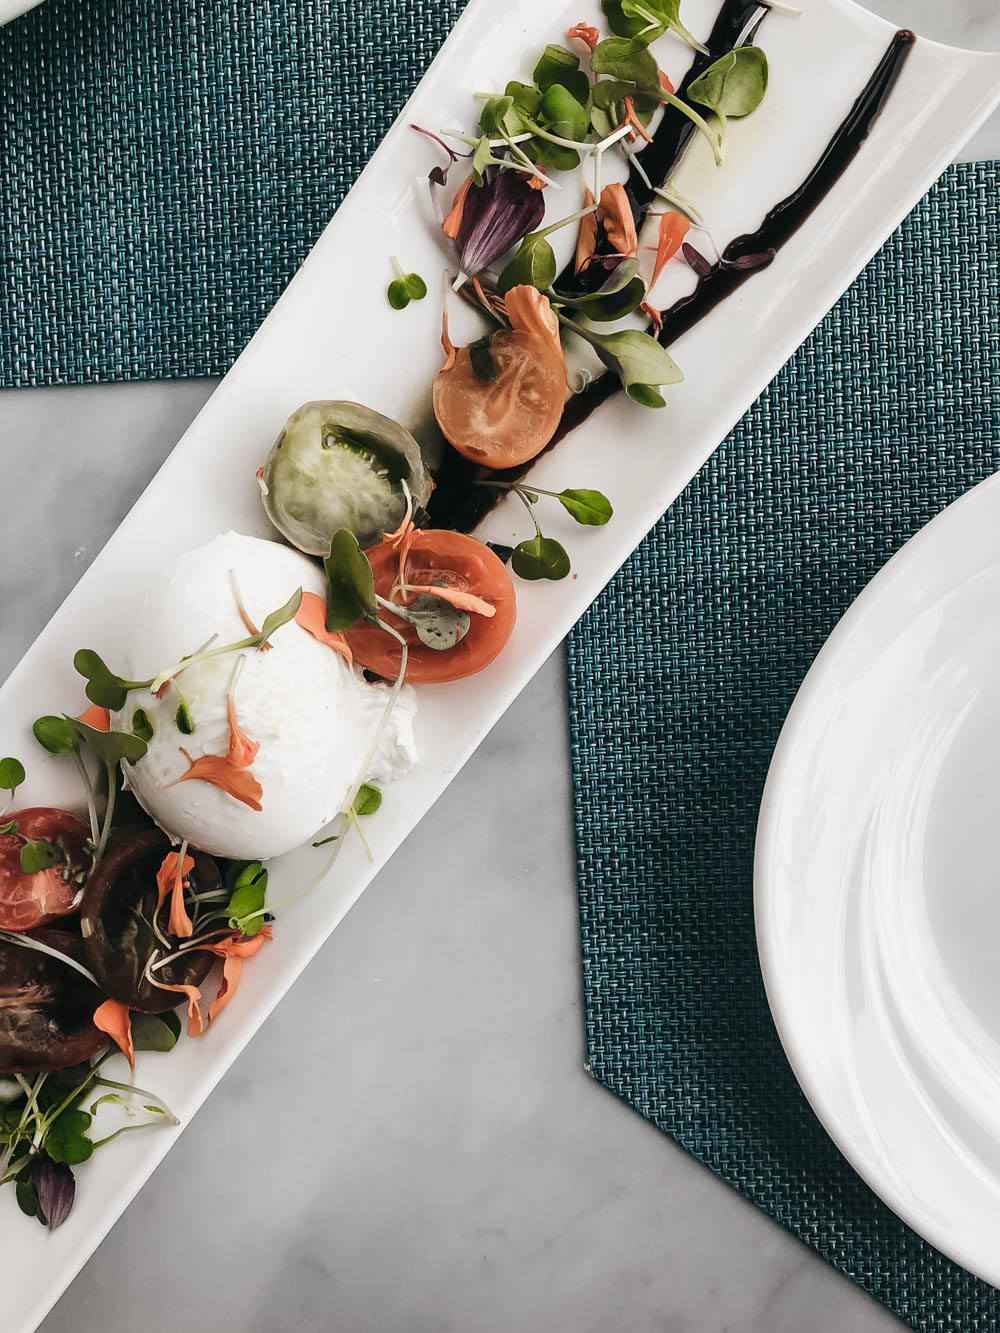 Burrata cheese with tomatoes and balsamic vinegar